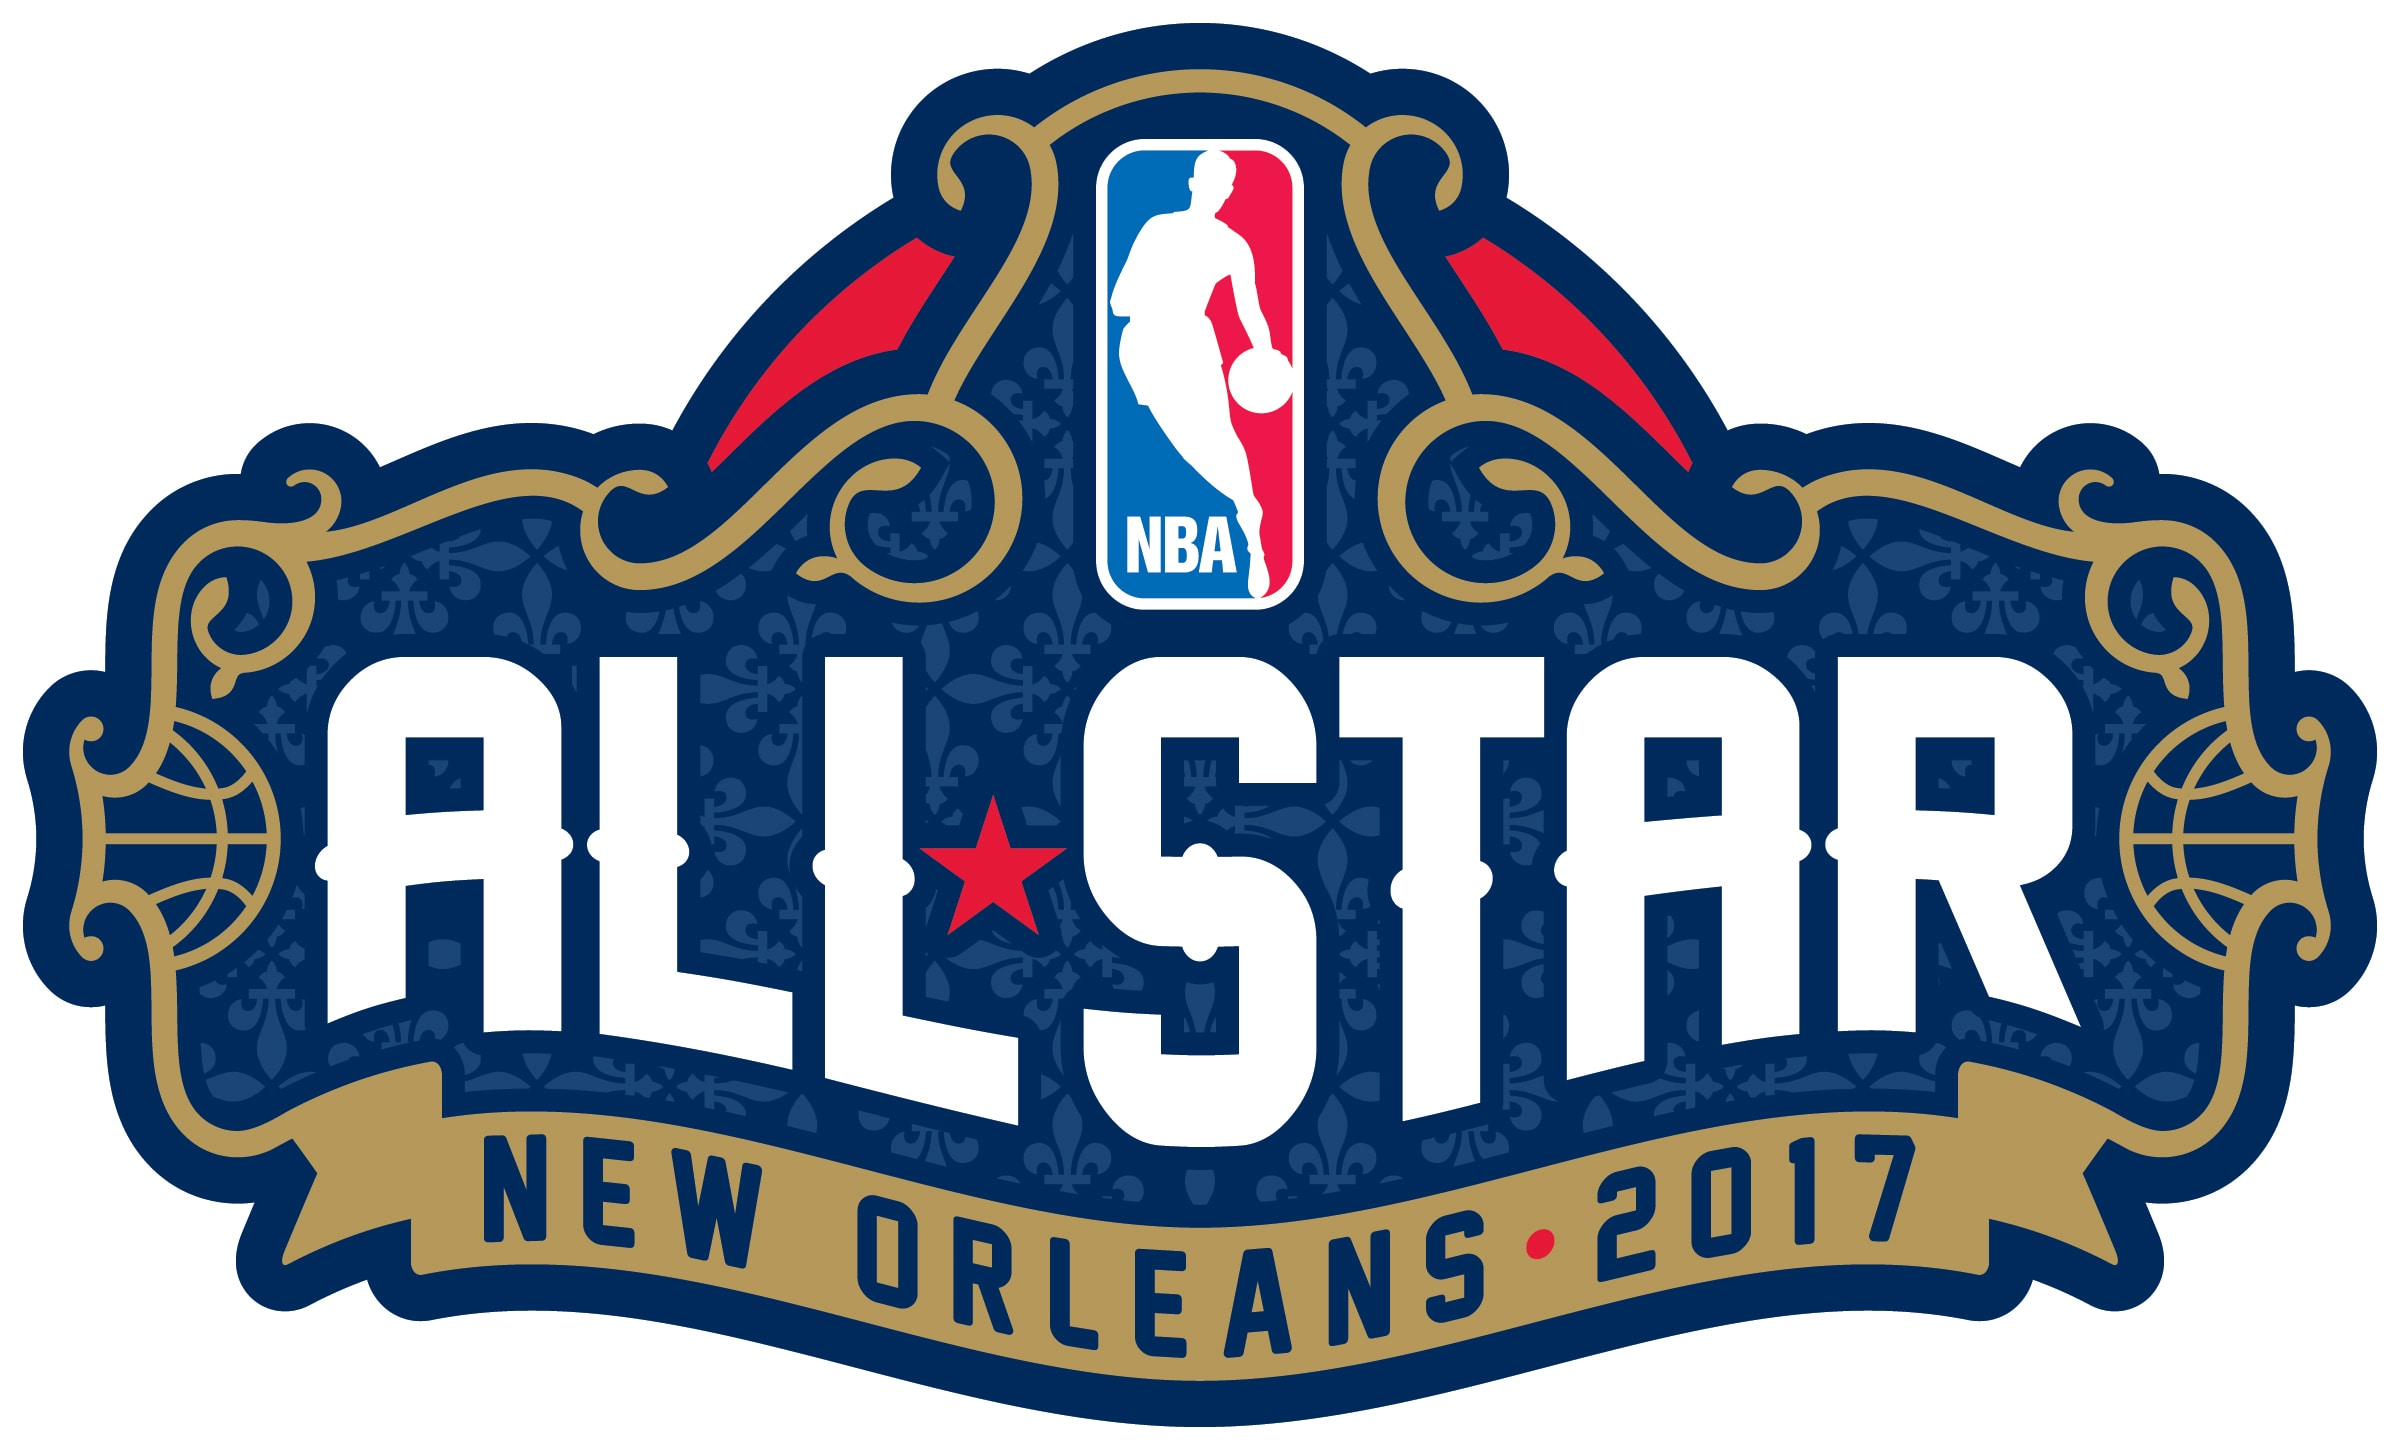 Nba Logos 2017 >> Nba Unveils New Orleans Inspired Nba All Star 2017 Logo